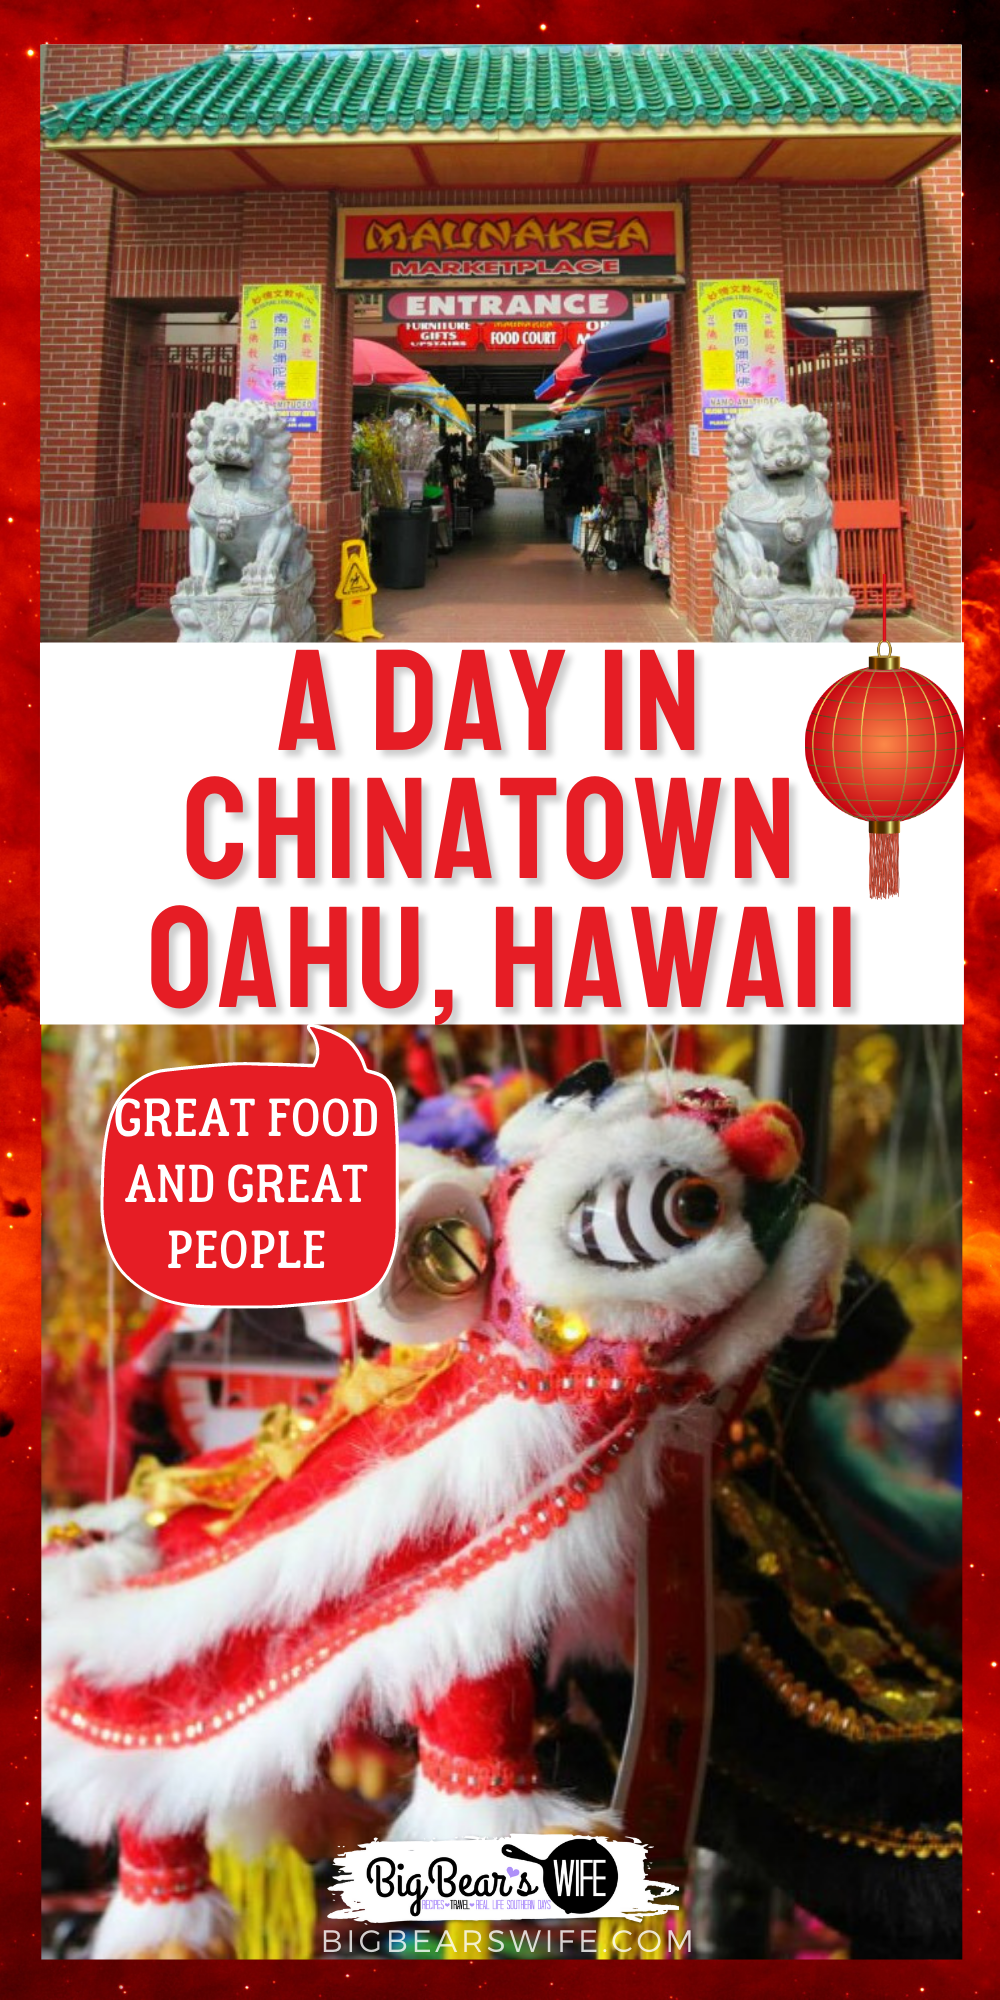 A day in Chinatown Honolulu, Oahu, Hawaii! We got a chance to visit Chinatown when we were in Hawaii for our Anniversary and these are some of the places that we were able to visit! Maunakea Marketplace, Pork Hash, Mai tai Soo, Kekaulike Market and more! via @bigbearswife